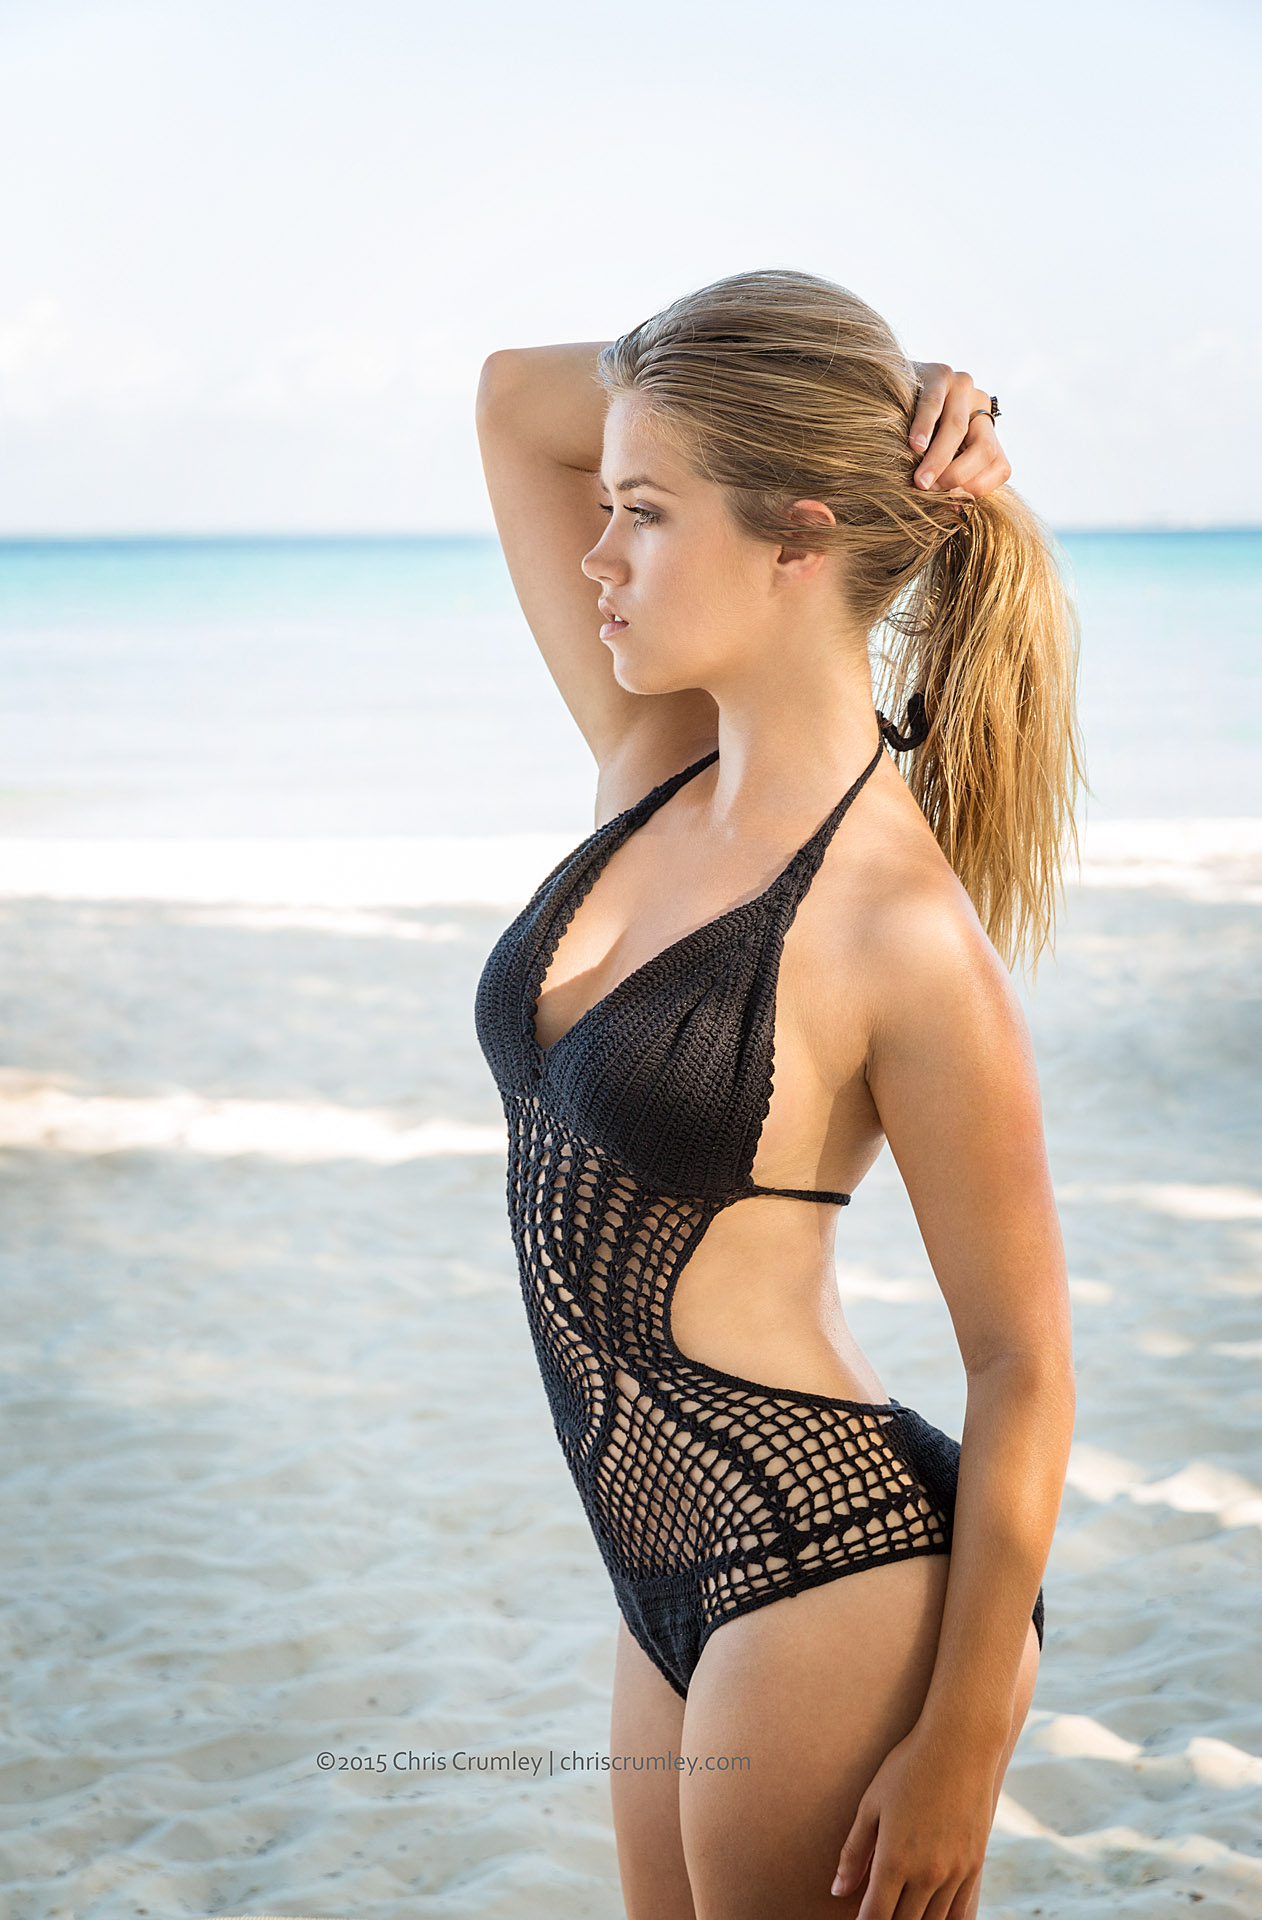 Model on the Beach, Isla Mujeres, Mexico